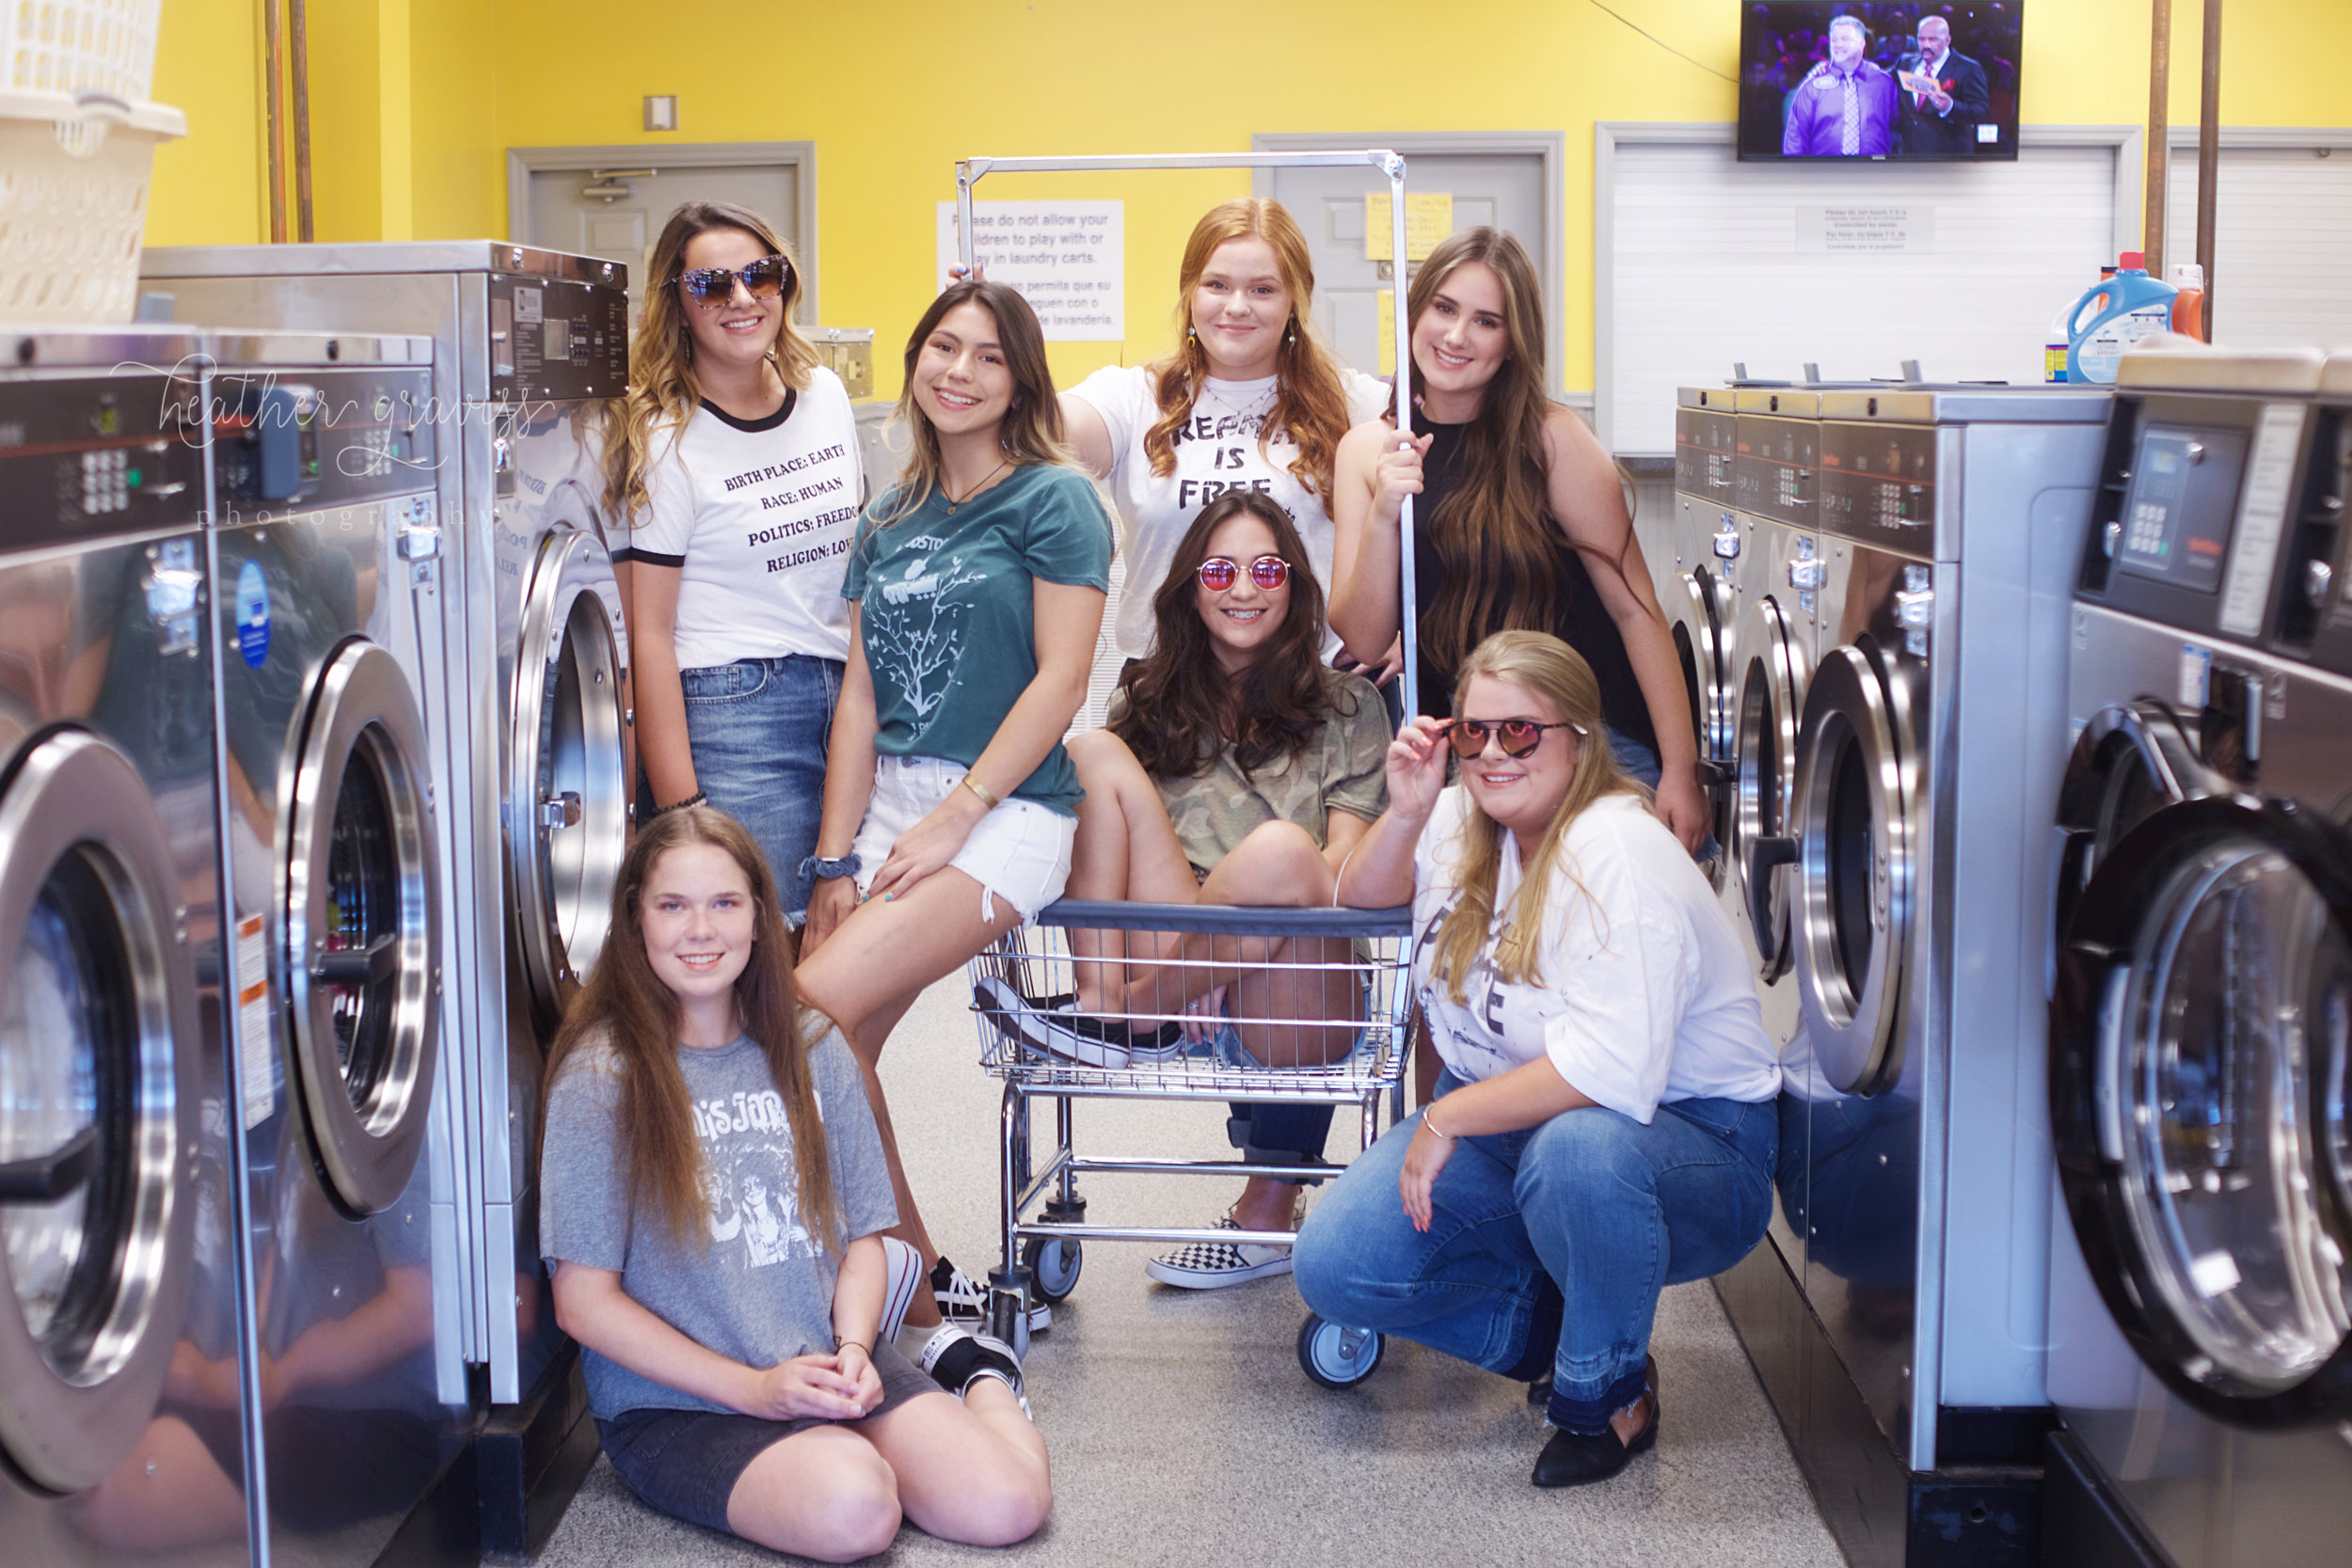 cool-girls-at-laundromat.jpg